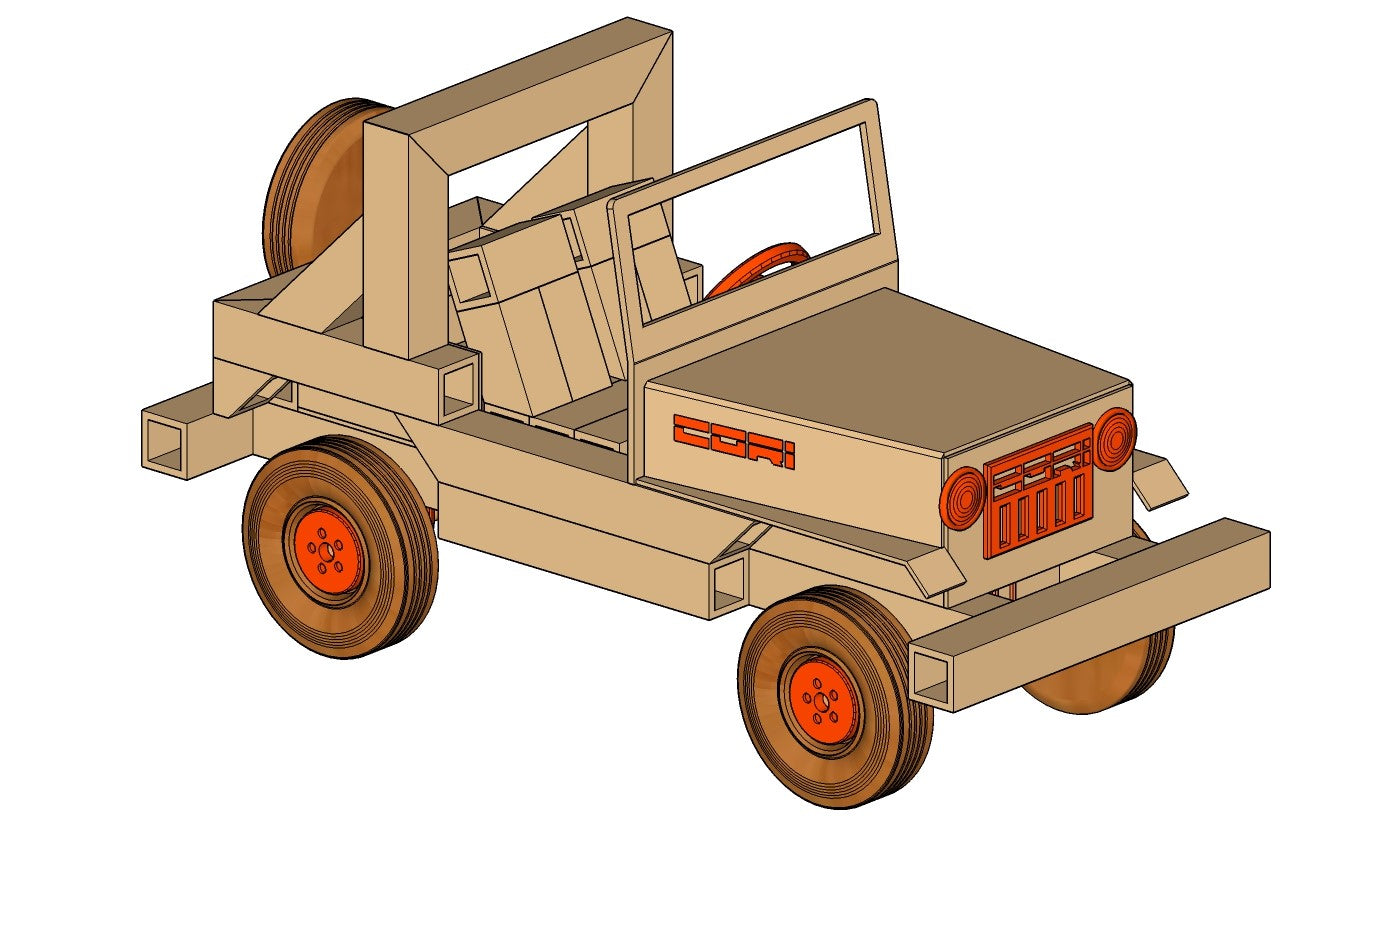 CORI Off Road Vehicle